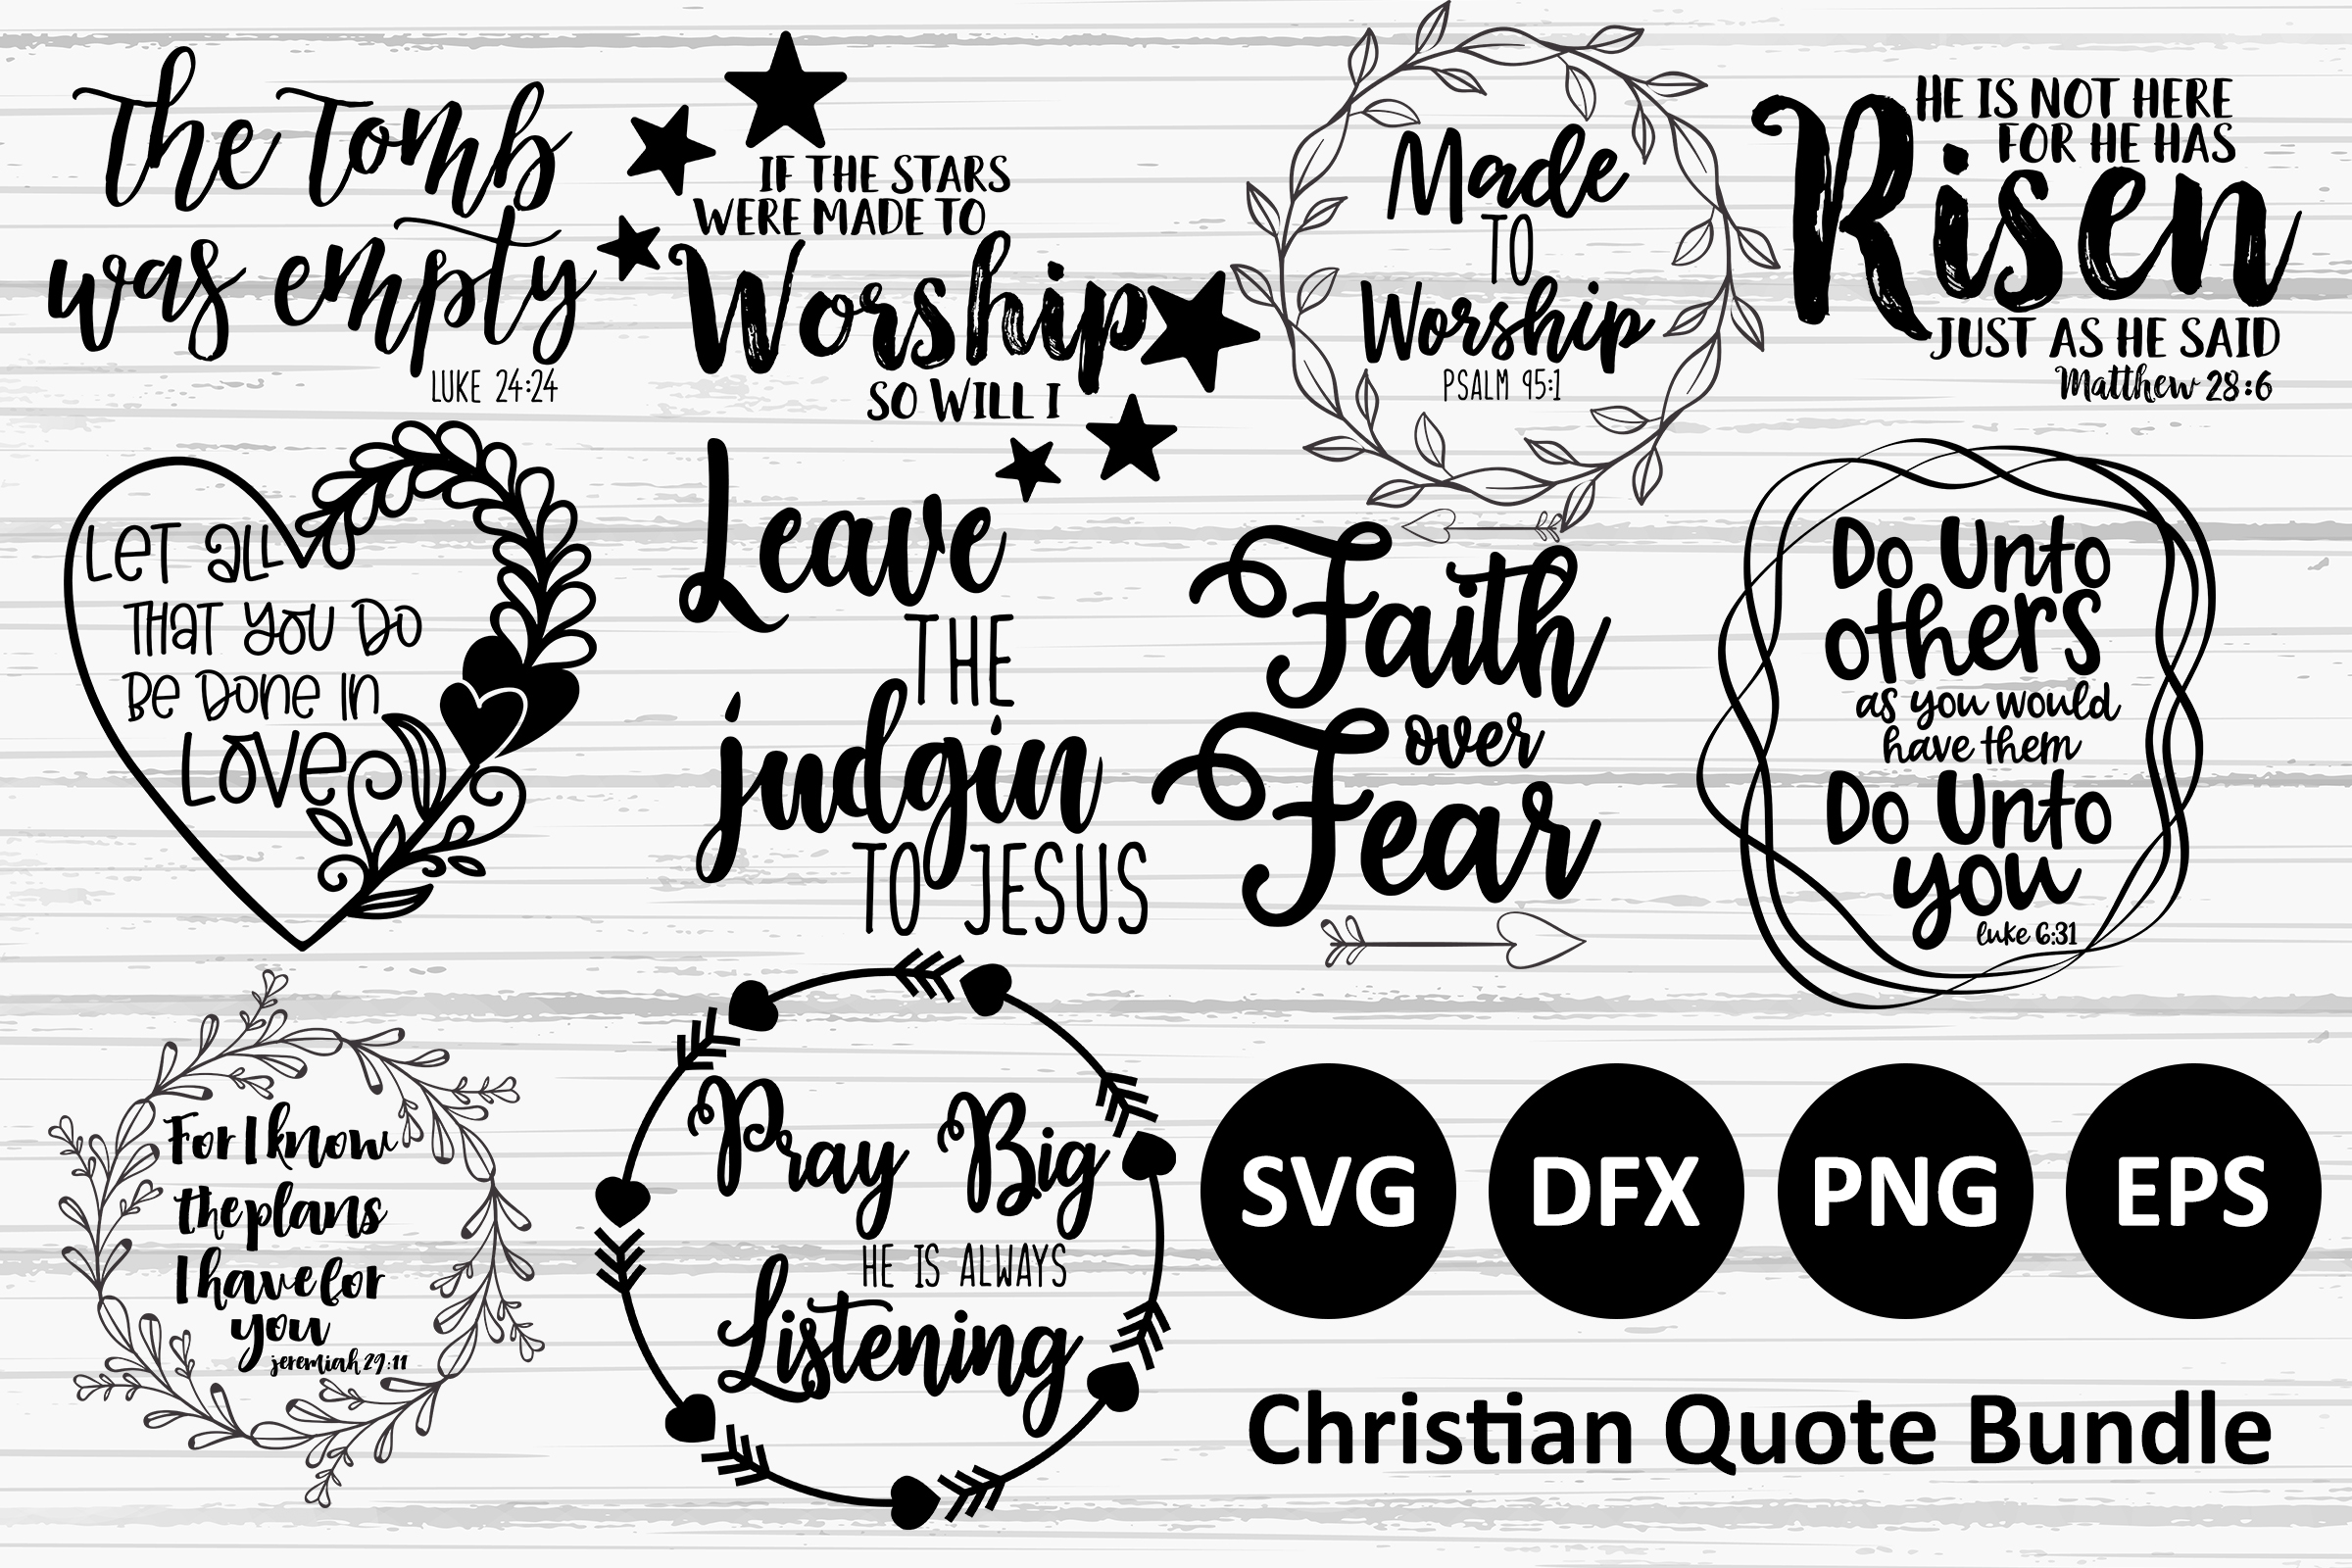 Download Free Christian Quote Bundle Graphic By Studio 17 Designs Creative for Cricut Explore, Silhouette and other cutting machines.